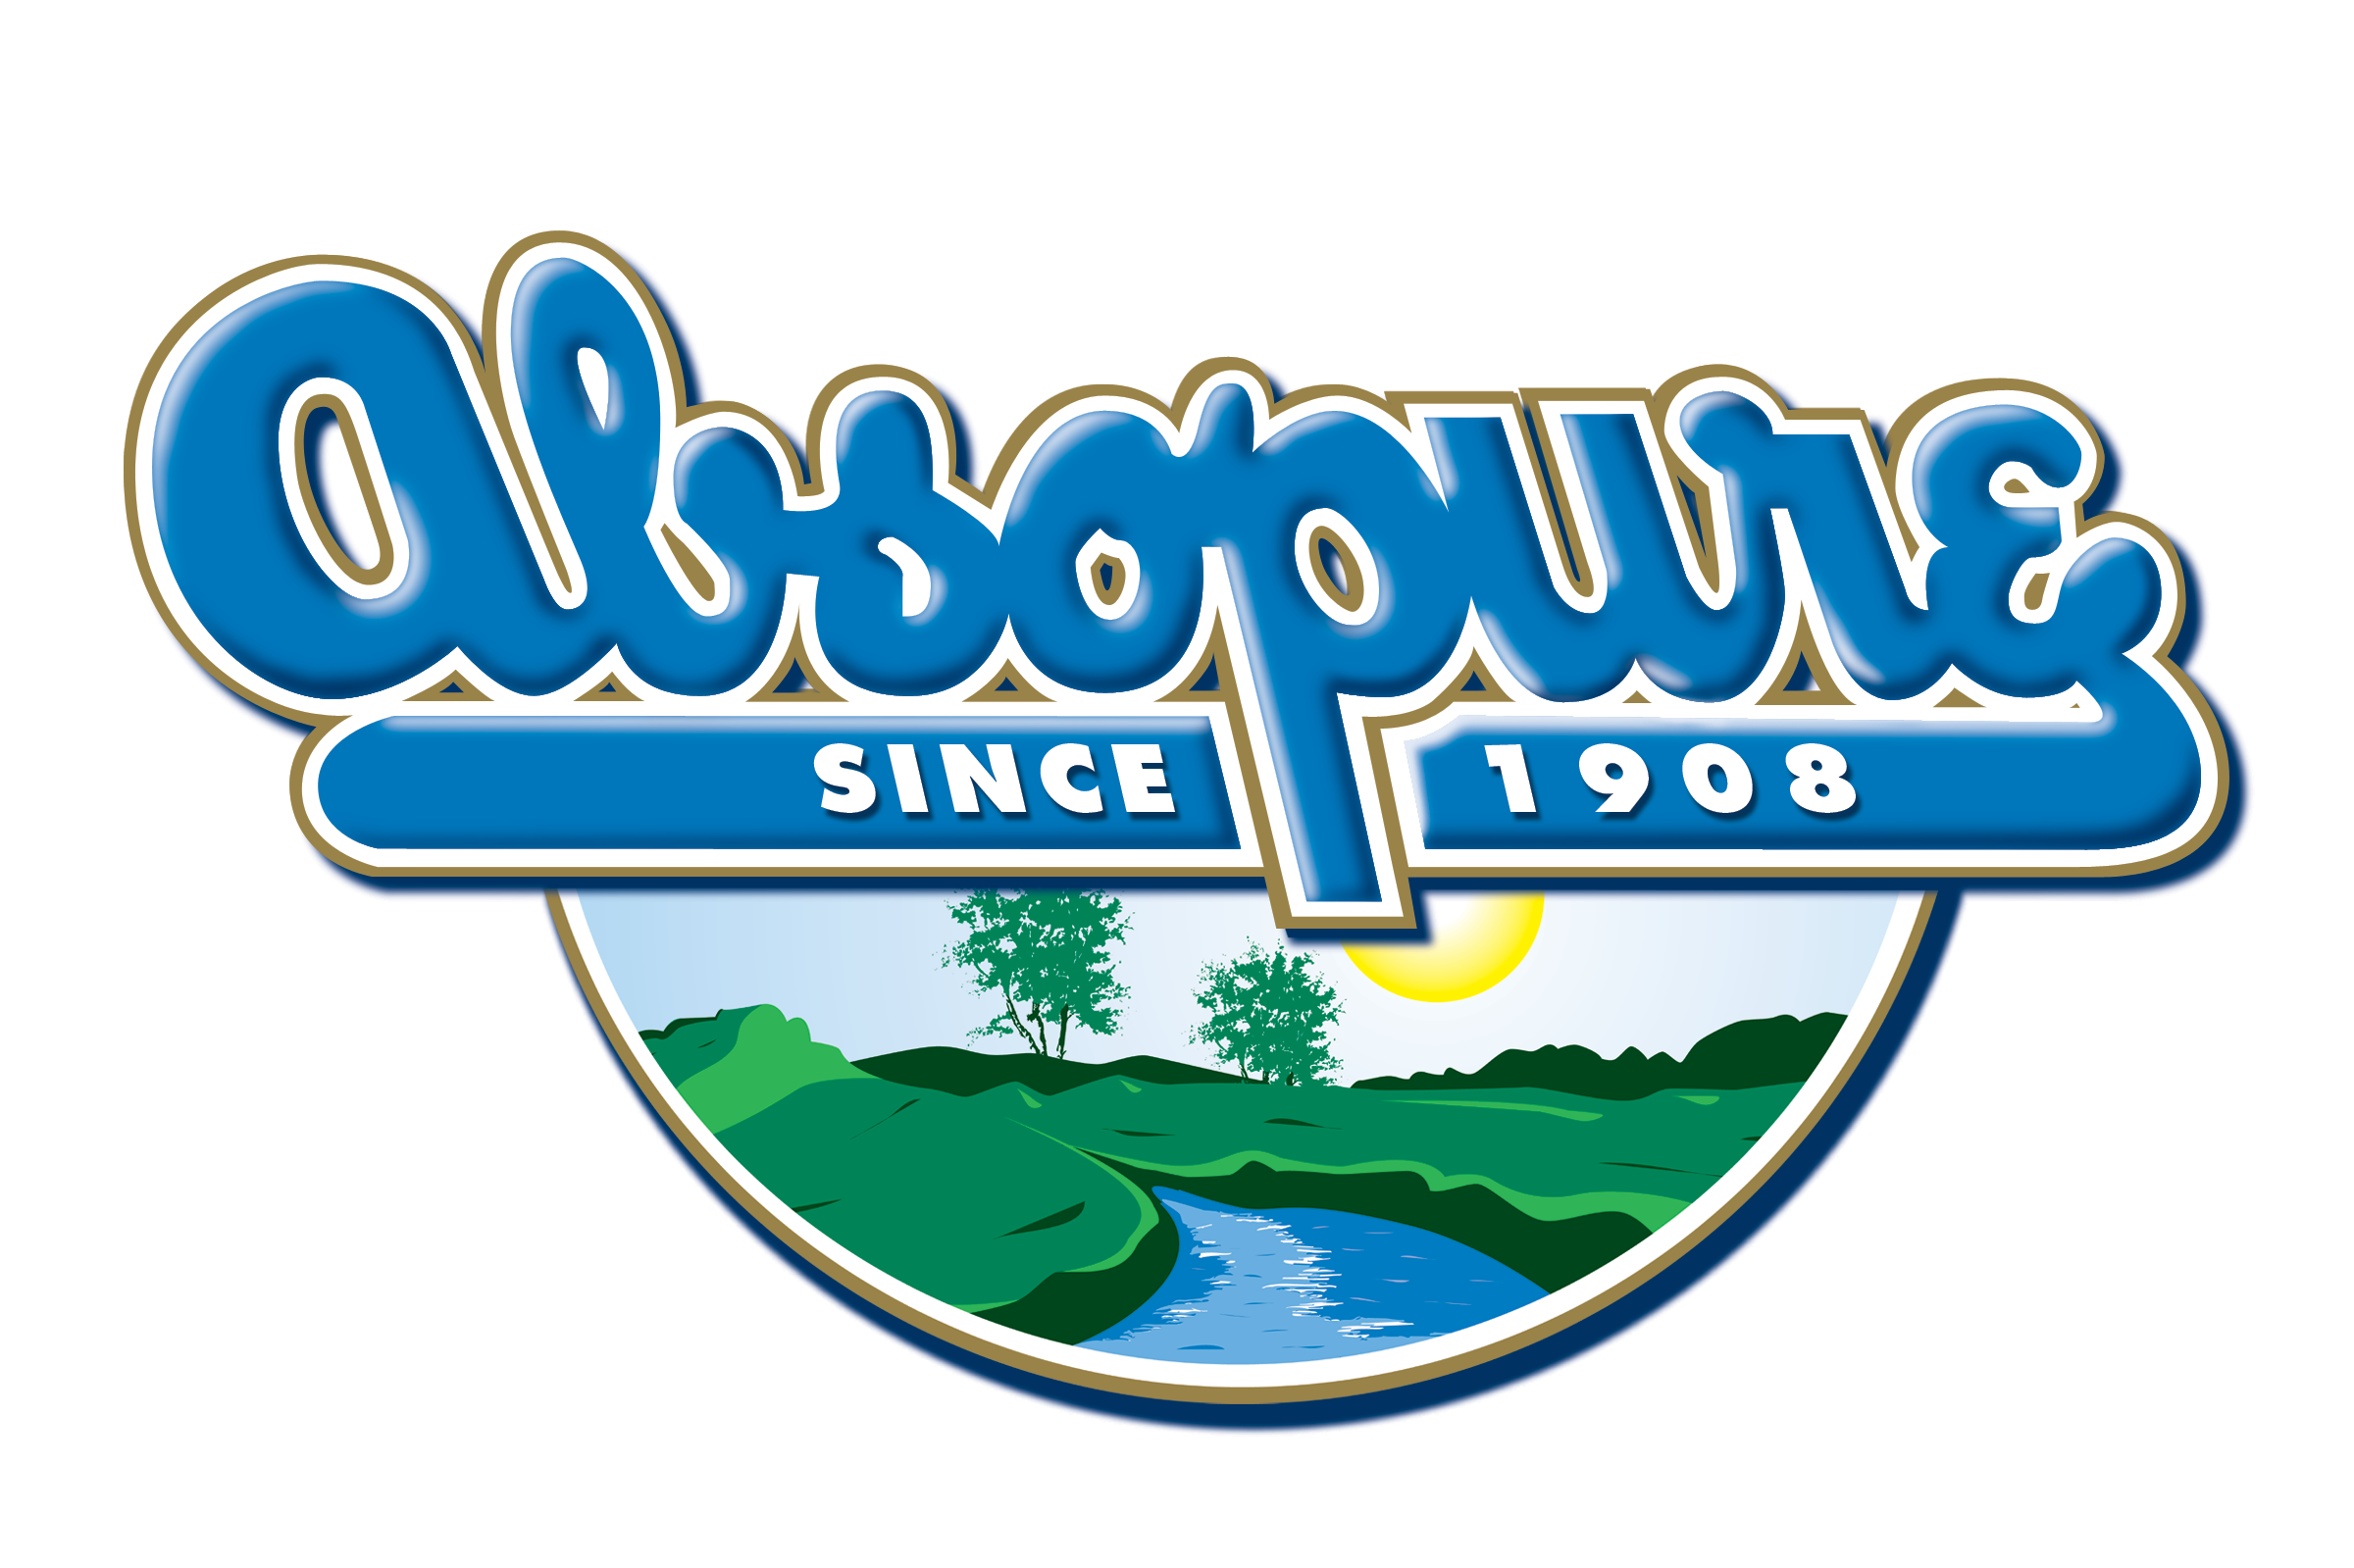 Since_1908_Logo.png